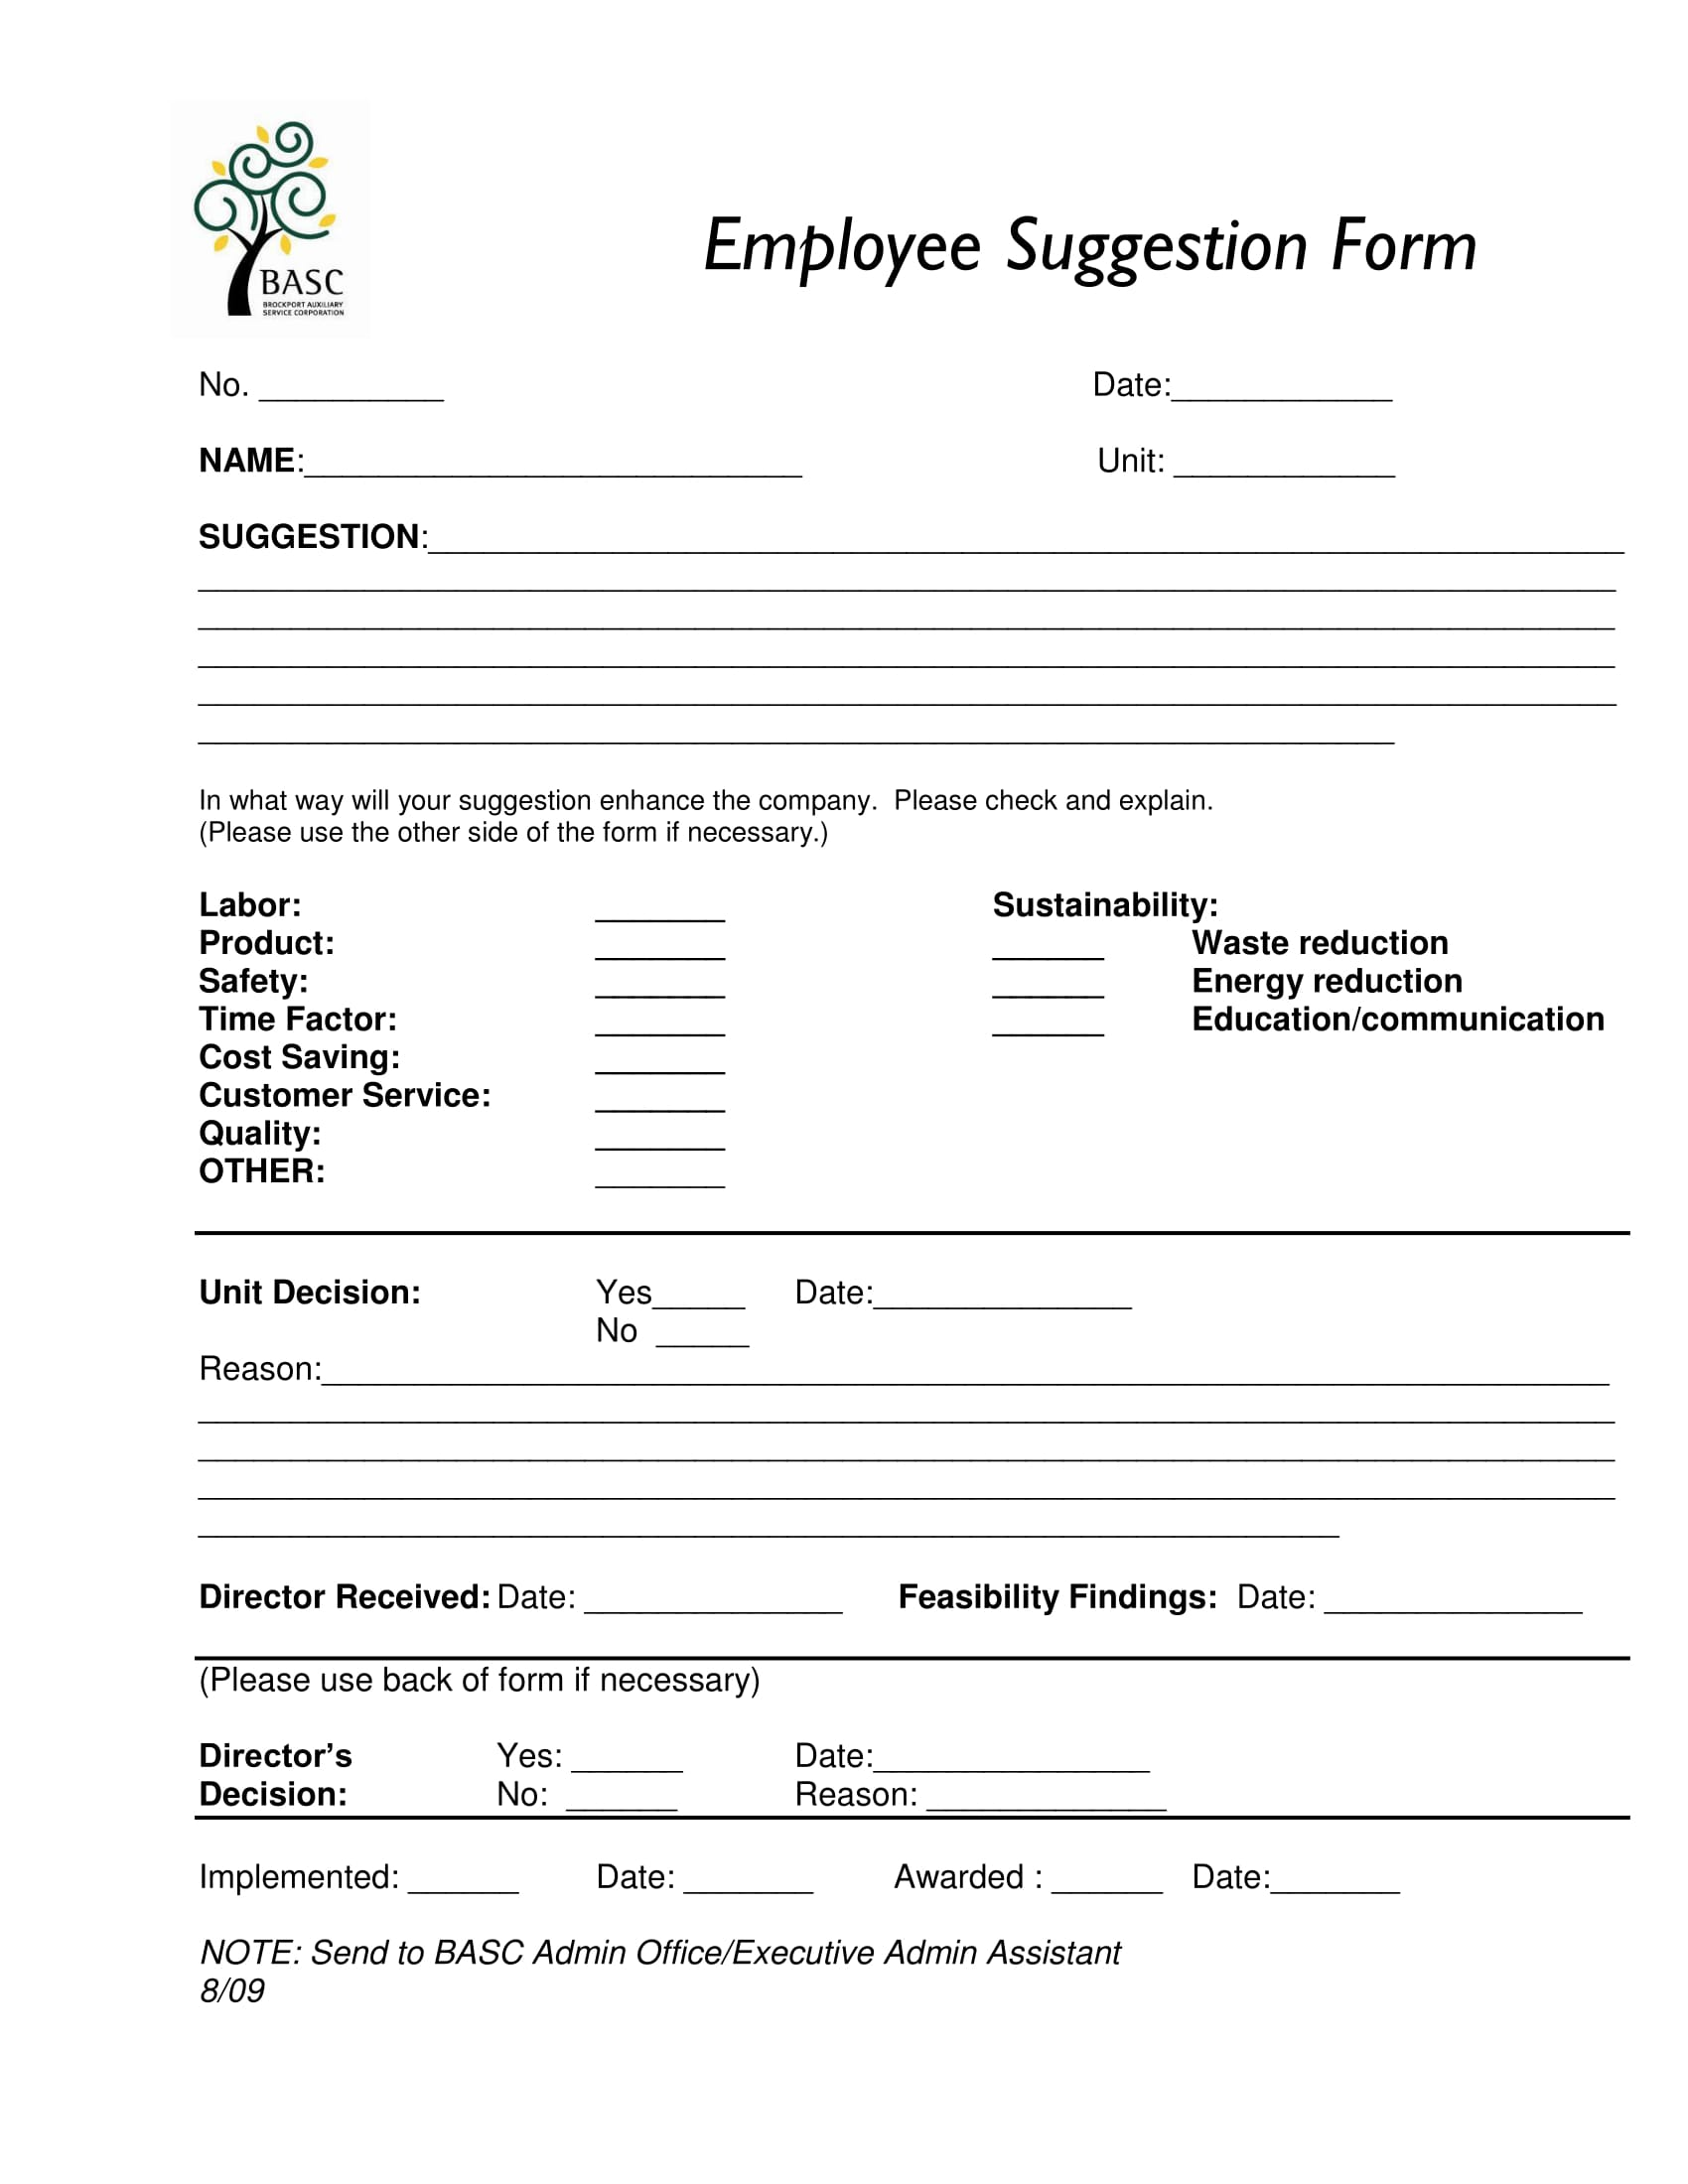 Basic Employee Suggestion Form